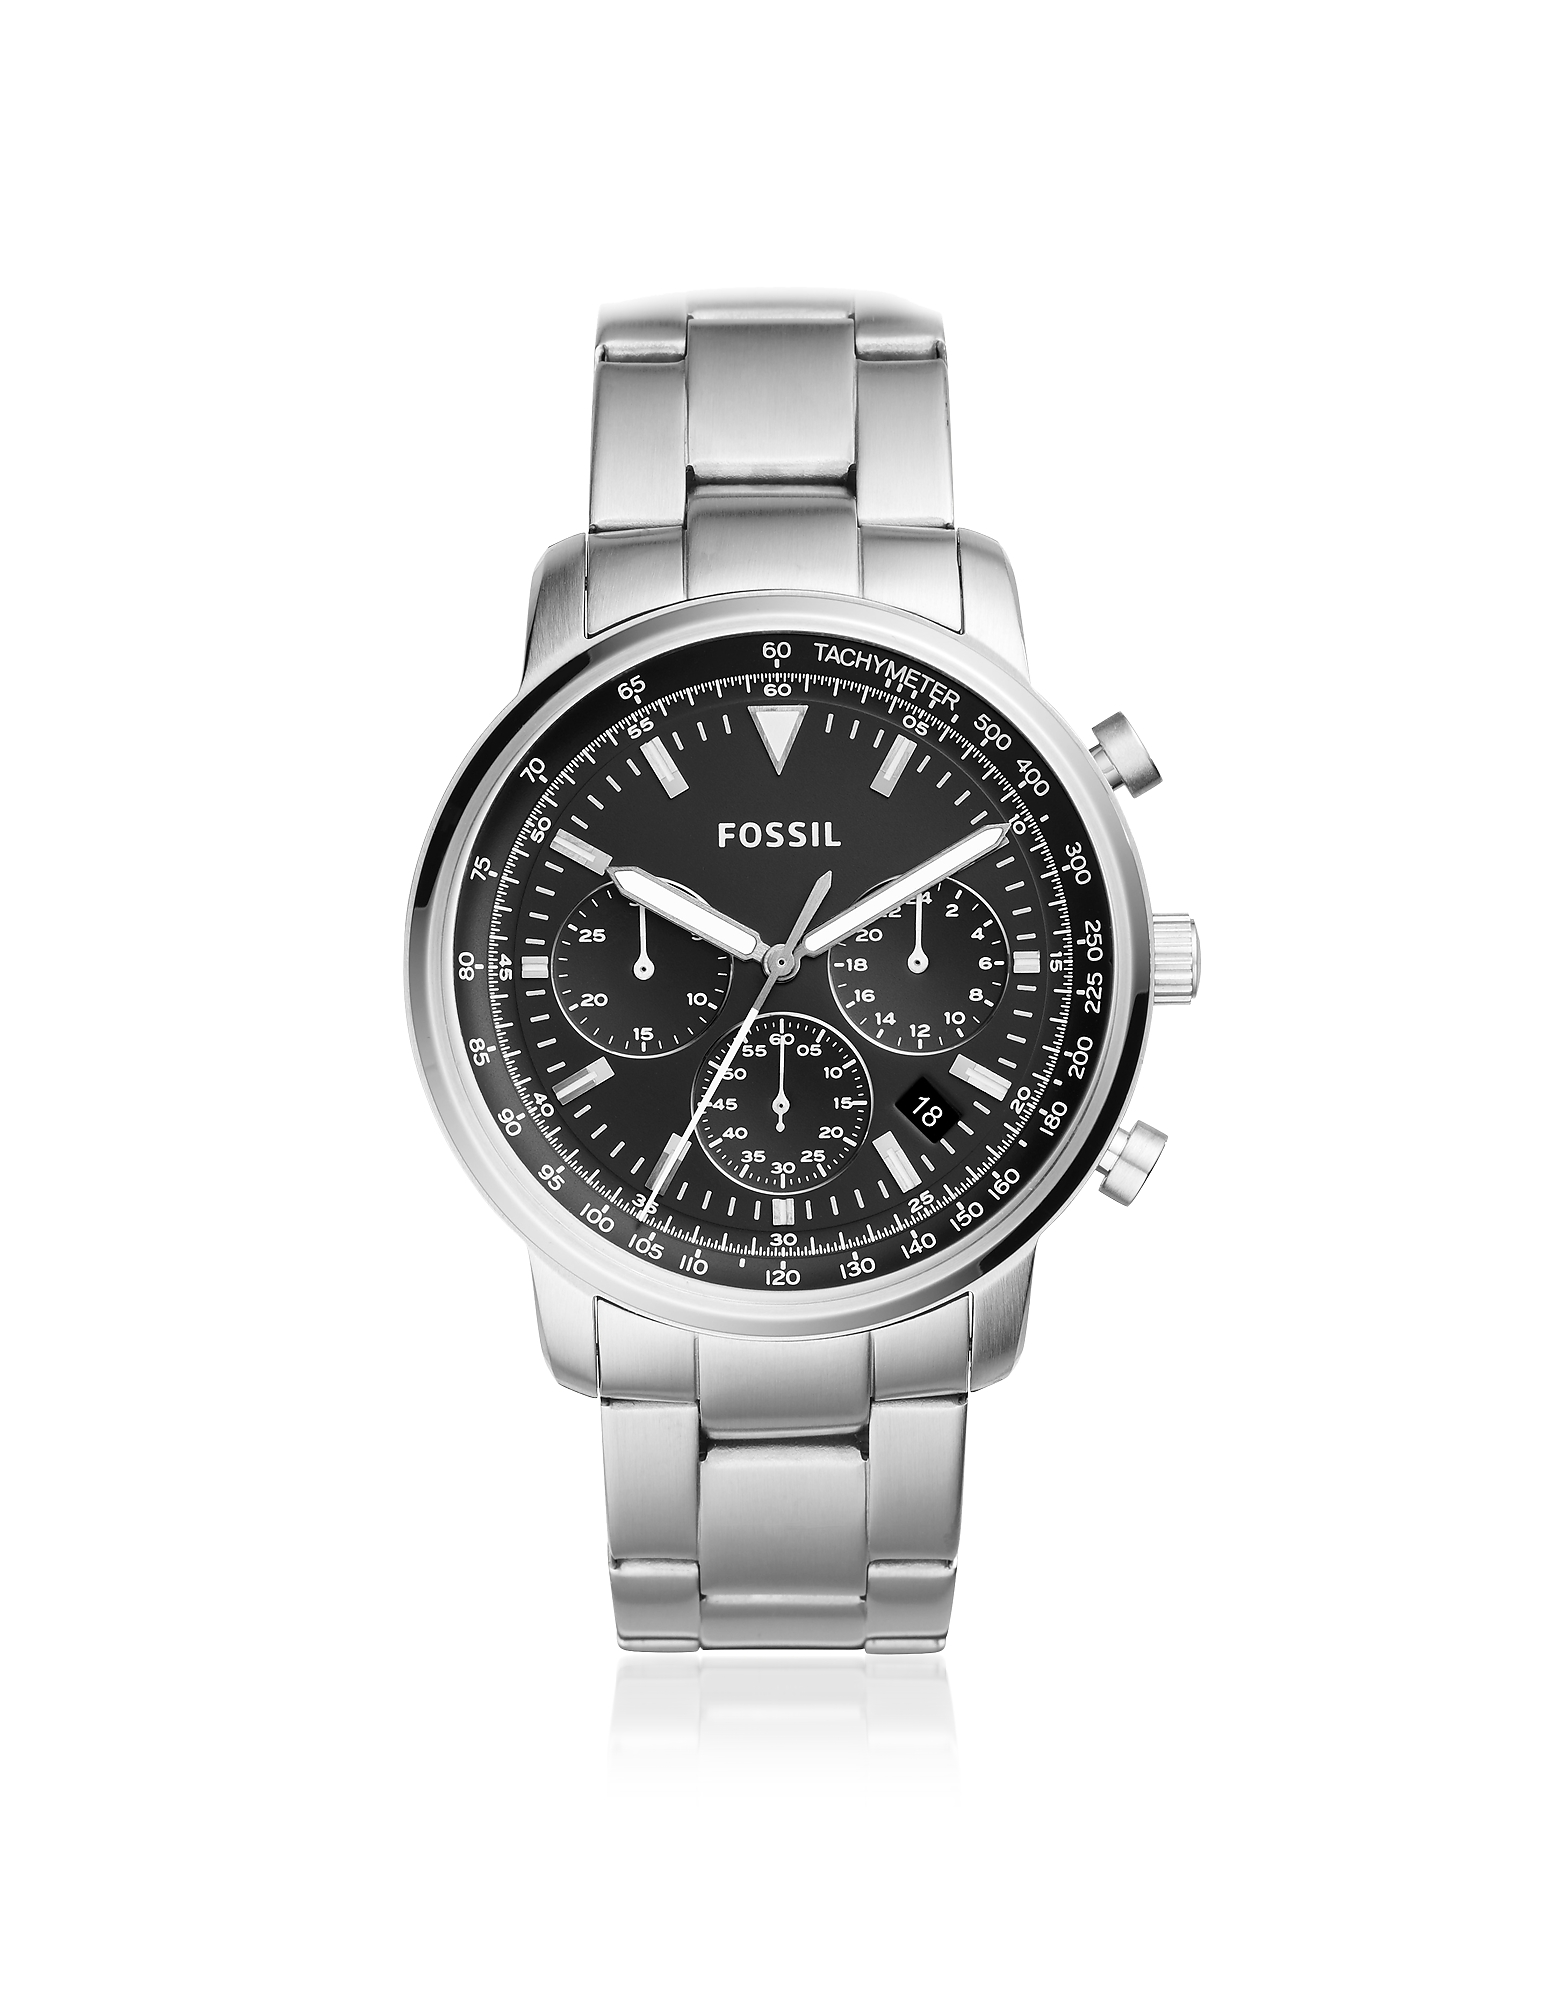 Fossil Men's Watches, Goodwin Chronograph Stainless Steel Men's Watch